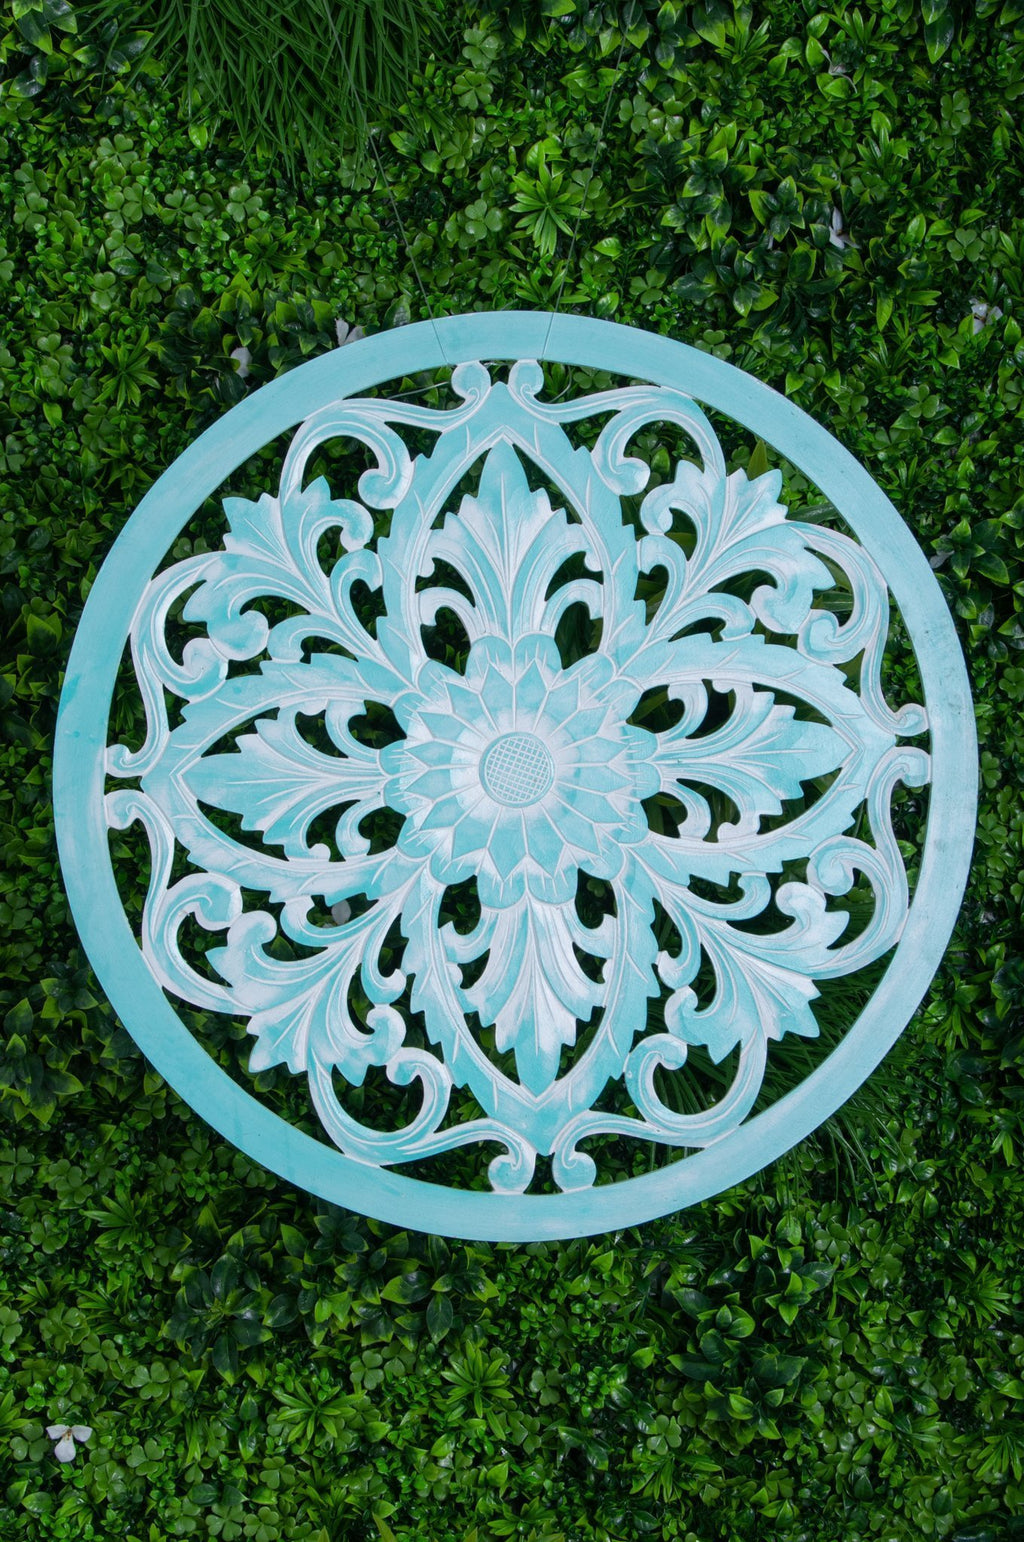 VVLH110 - ROUND WOOD LOTUS PANEL 80CM - BABY GREEN WASH